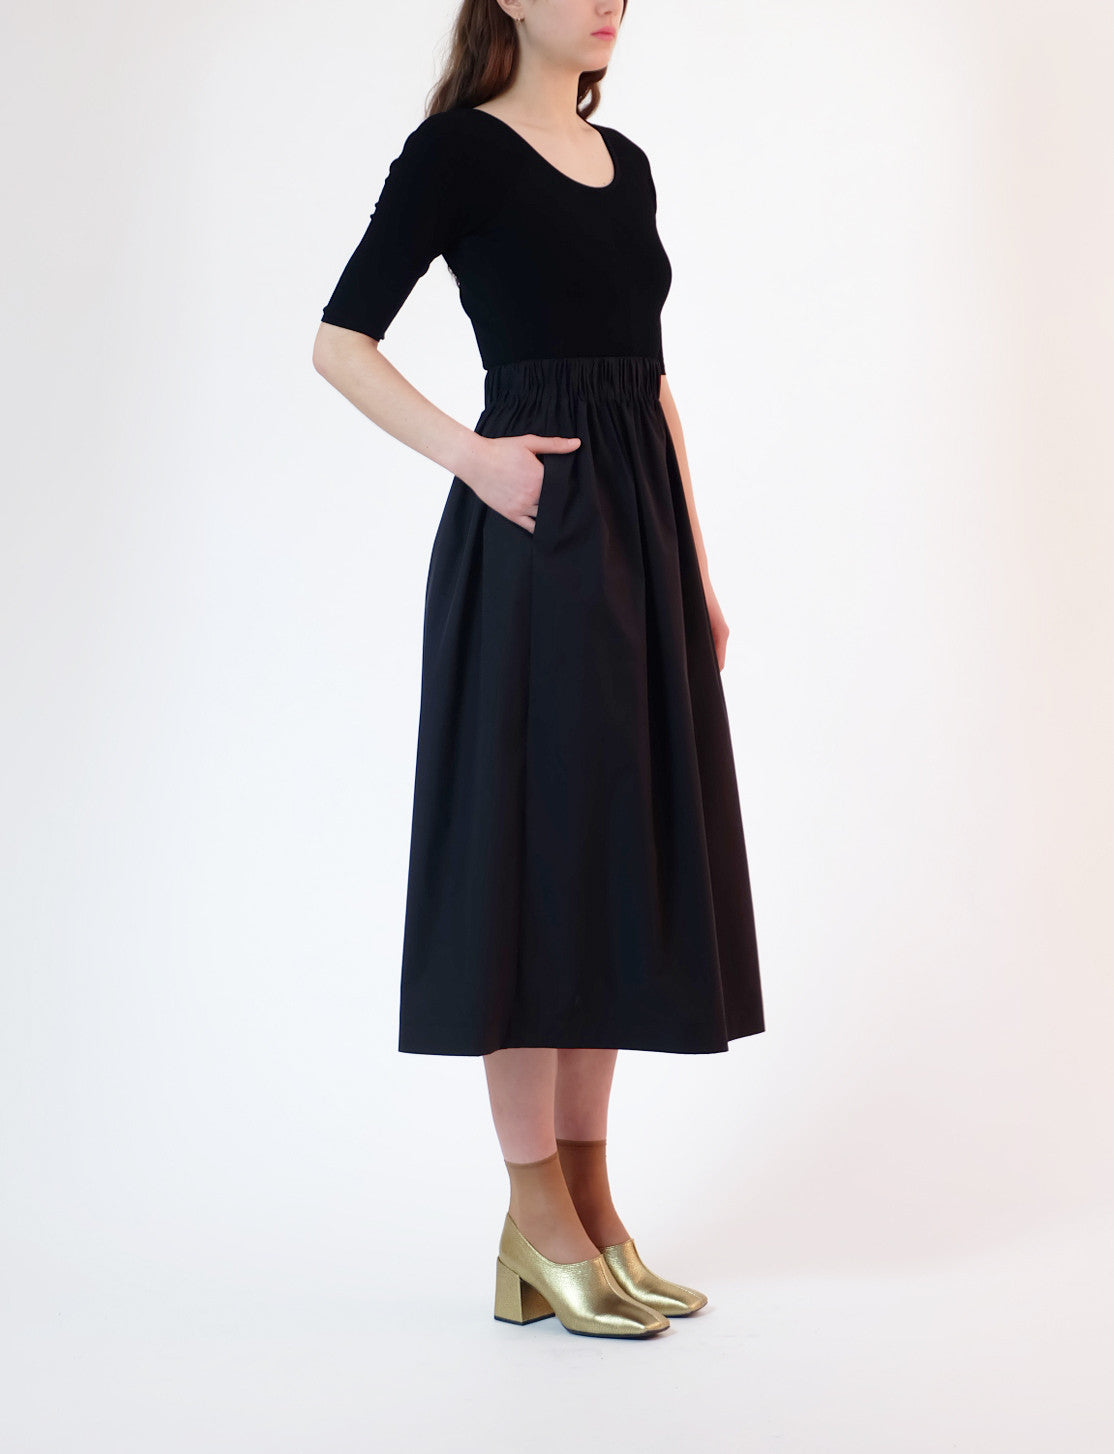 elastic waist skirt - black